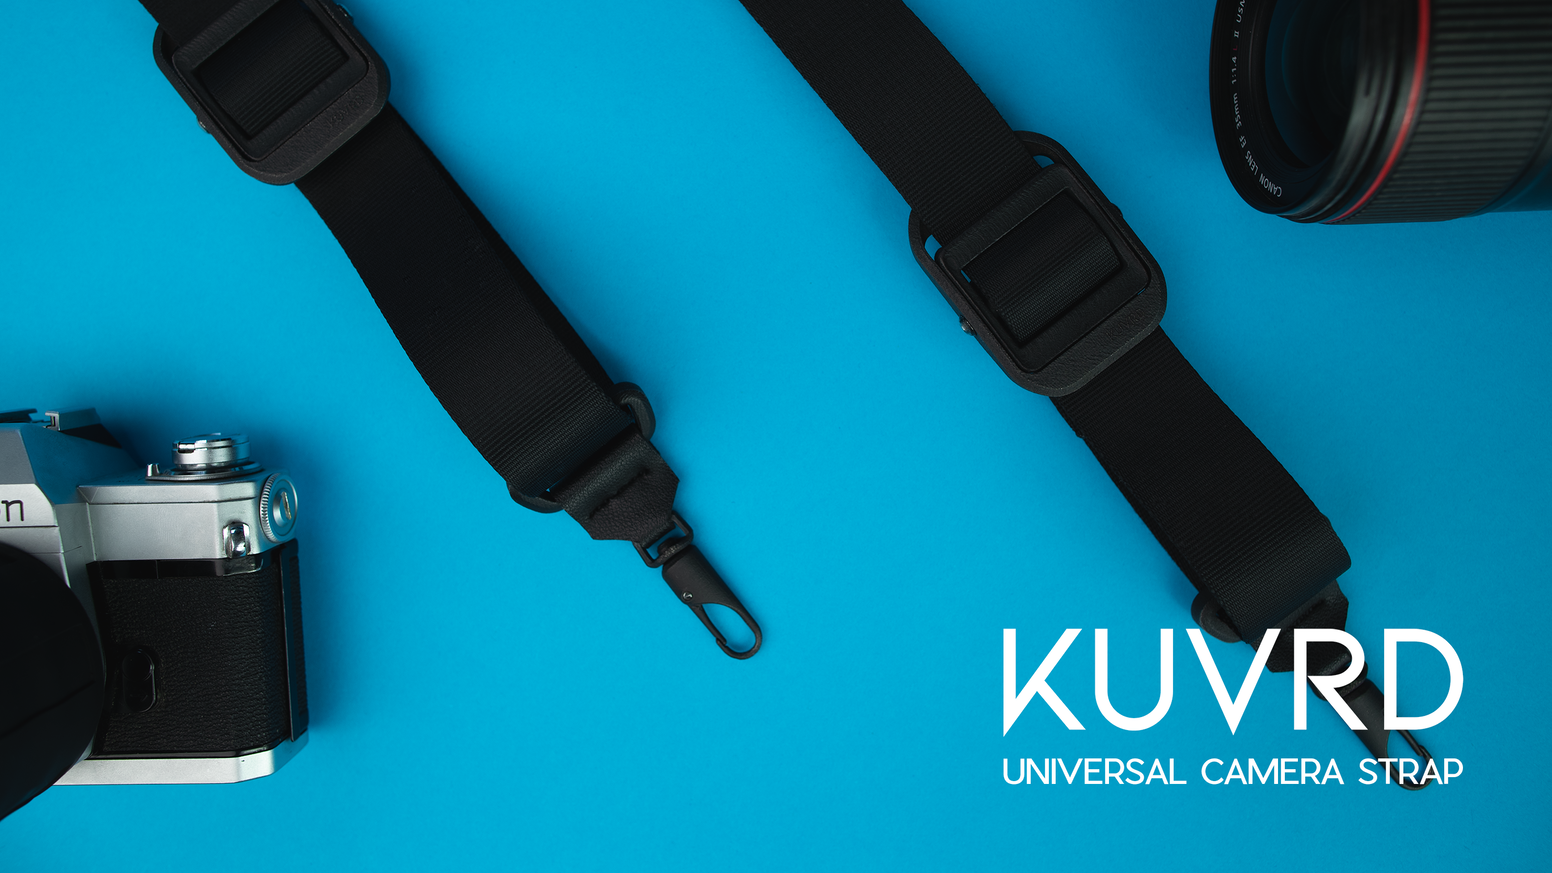 The most versatile camera strap. Designed, built and tested just for you. No matter your style, subject or setting—you're KUVRD.